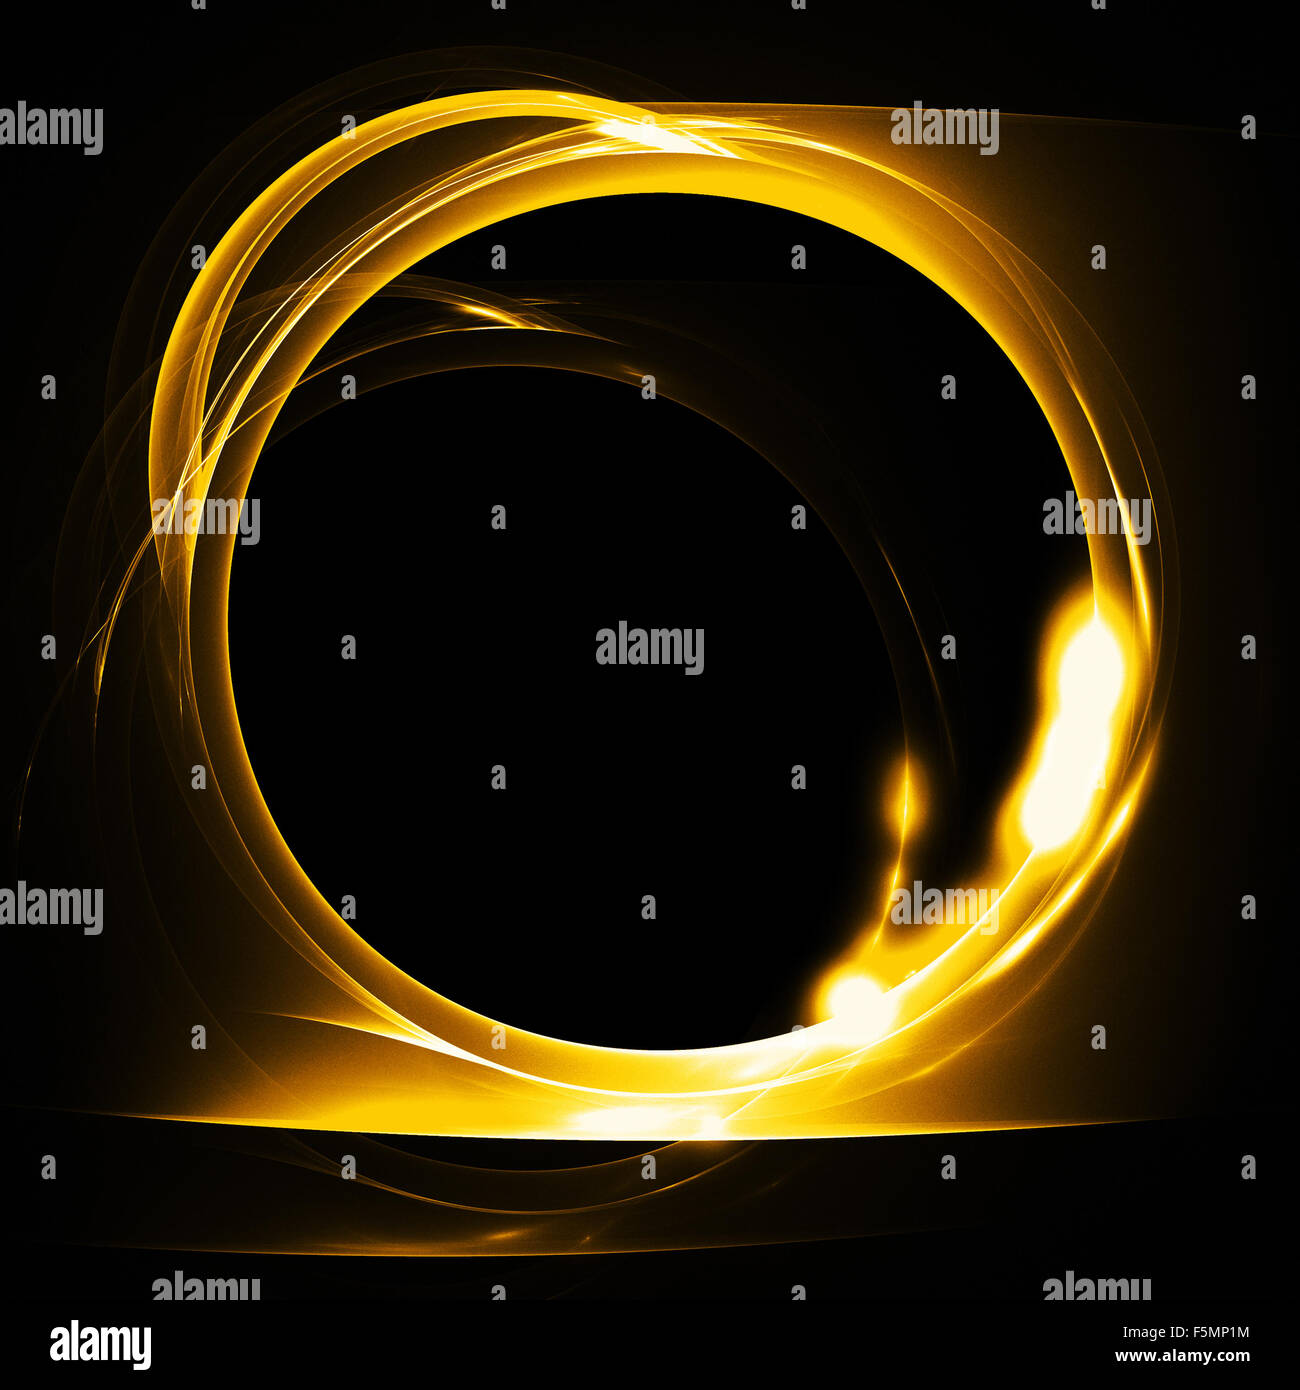 Molten gold ring. Abstract fire fractal with round hole on black background. Graphic pattern - Stock Image